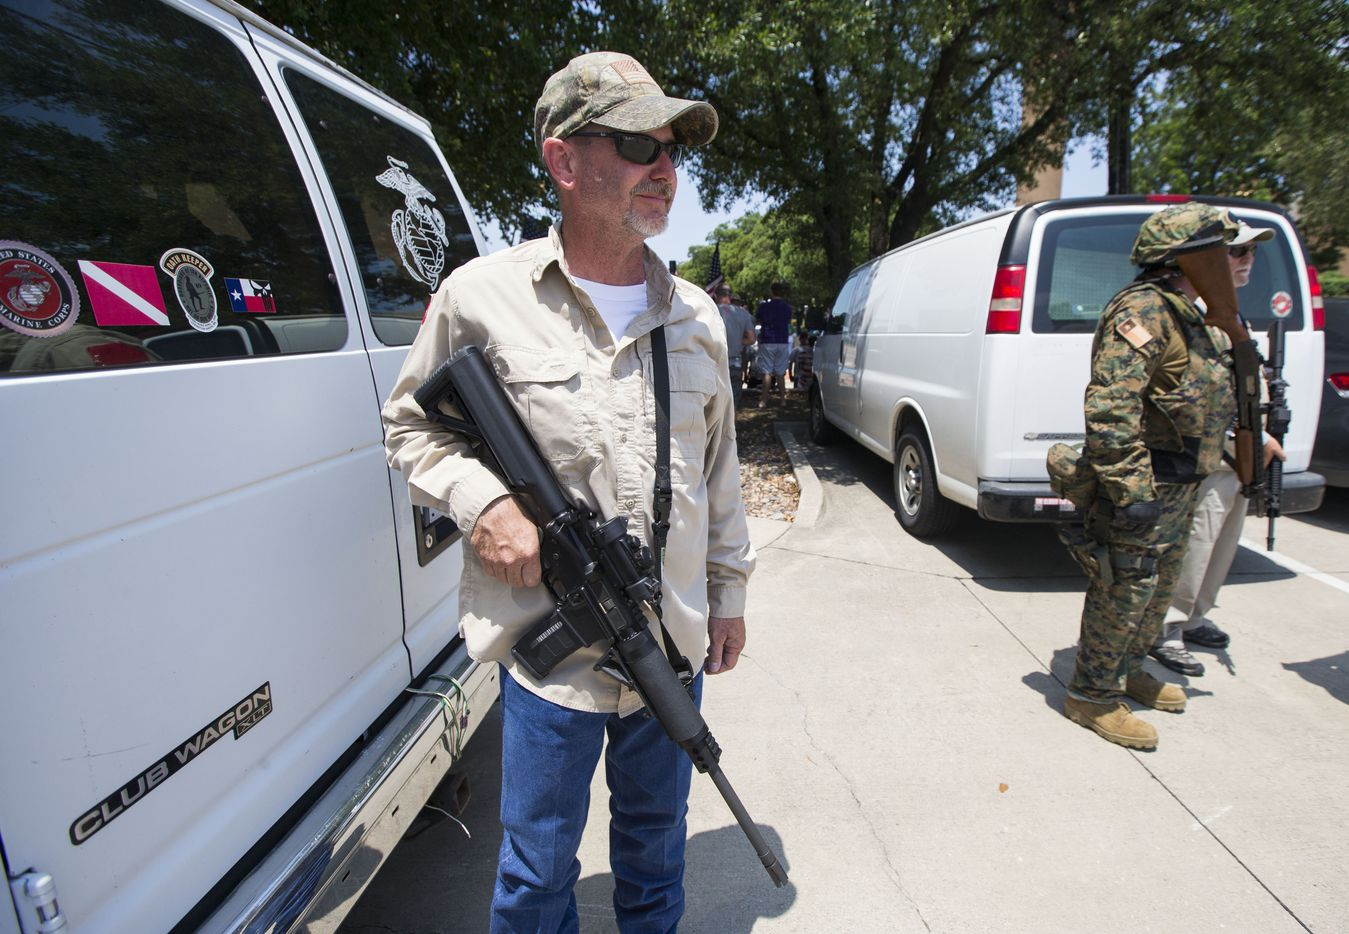 Anti-Shariah protester Jim Rodgers of Fort Worth holds his gun during an anti-Shariah protest and counterprotest Saturday, June 10, 2017, at the intersection of Abrams Road and Centennial Boulevard in Richardson.